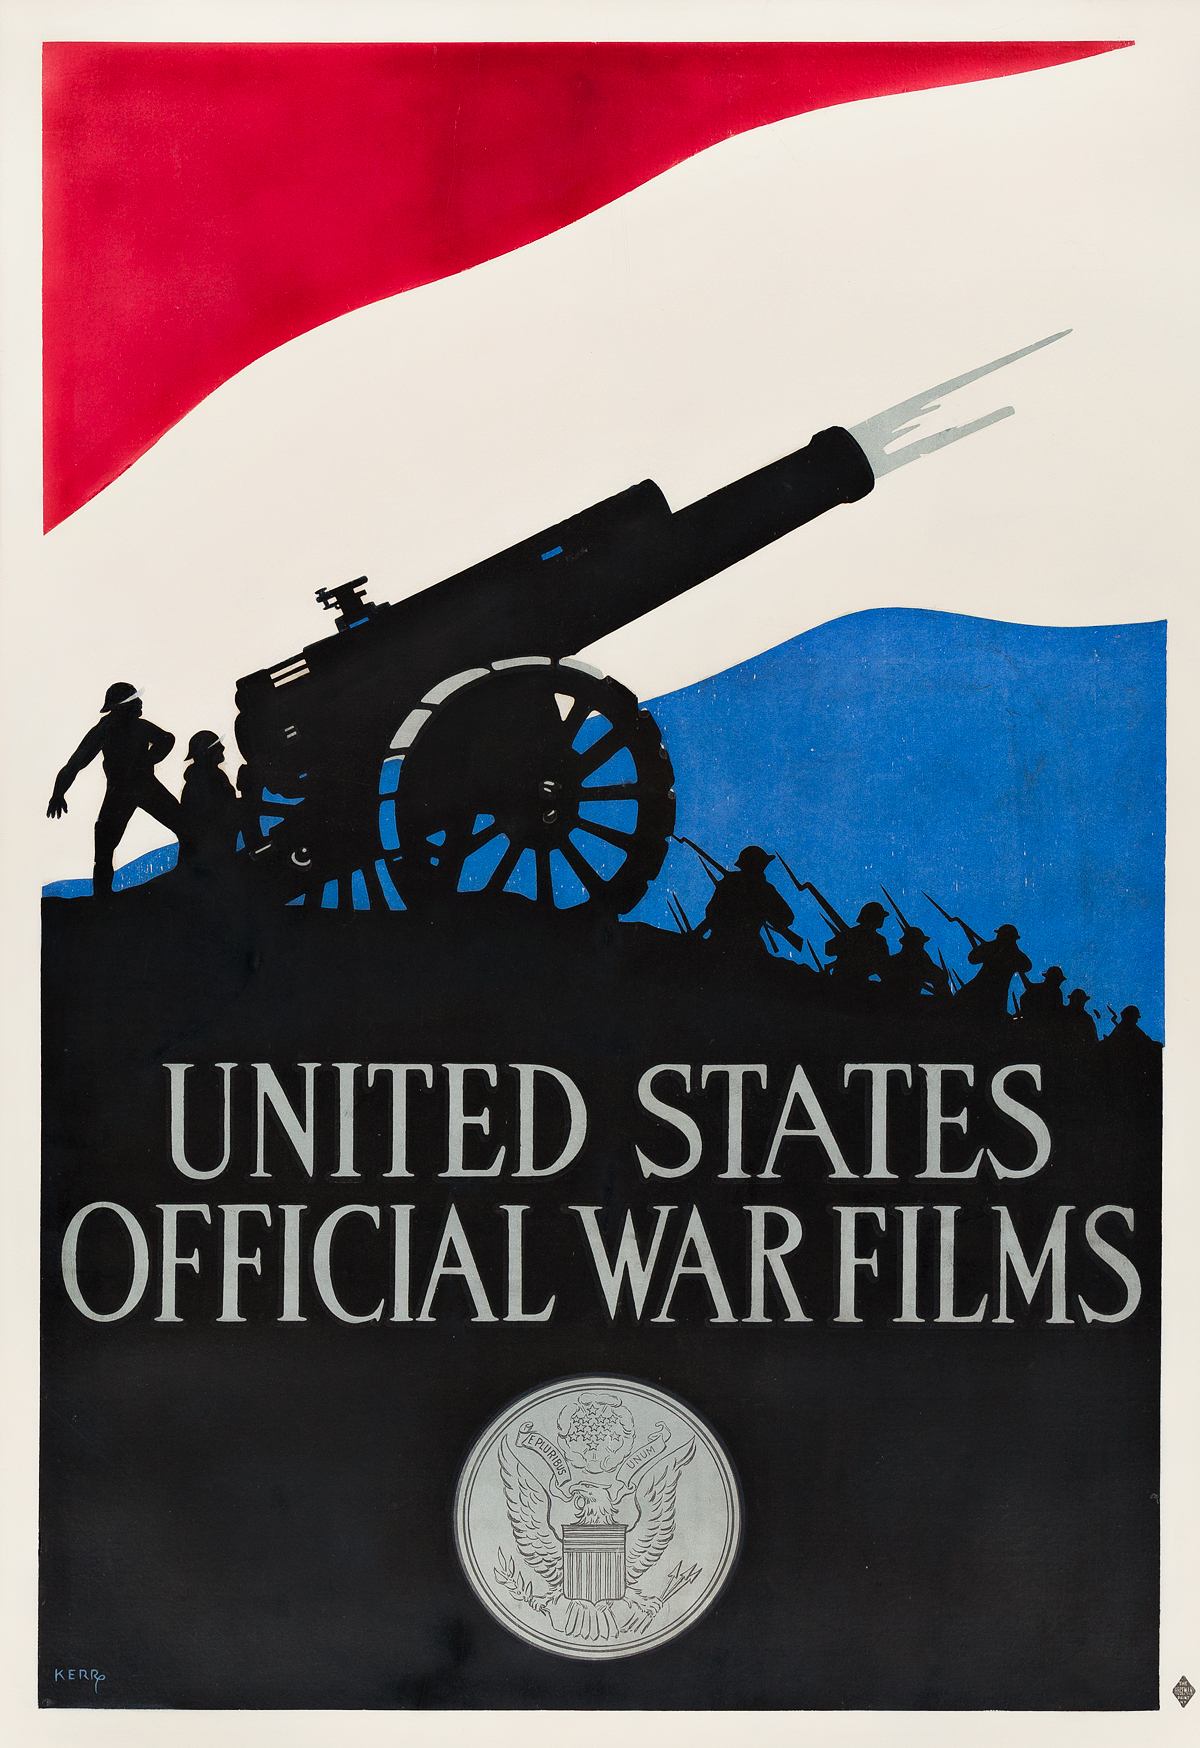 KERR-(DATES-UNKNOWN)-UNITED-STATES-OFFICIAL-WAR-FILMS-1917-41x28-inches-104x71-cm-The-Hegeman-Print-New-York